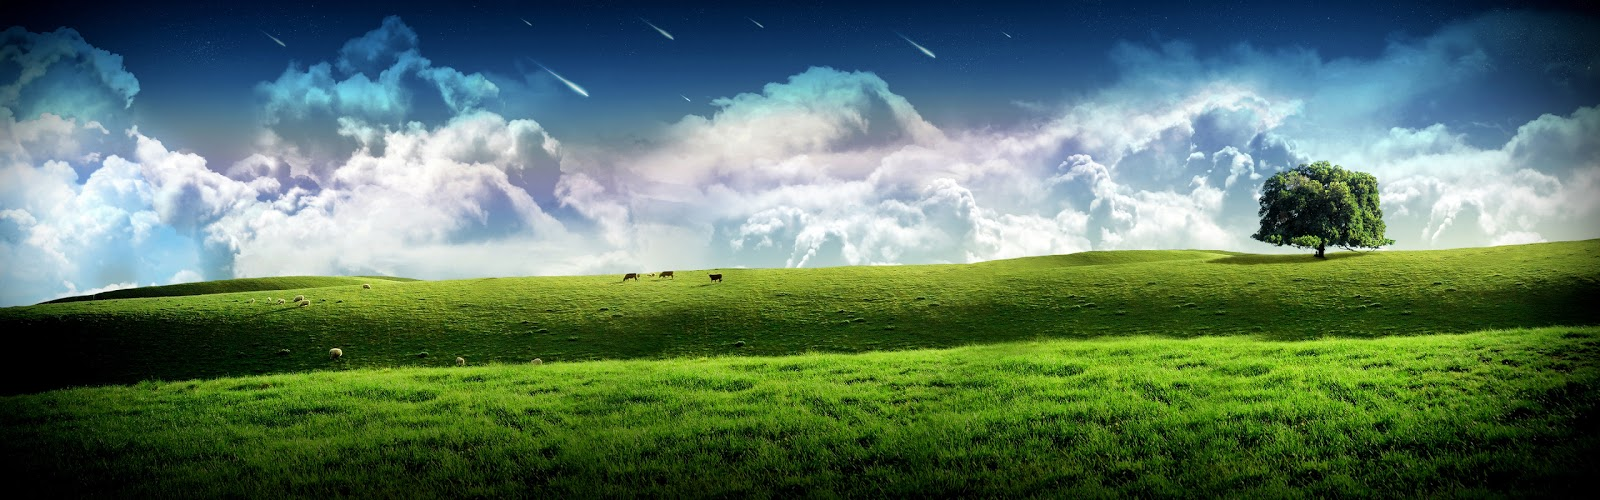 screen monitor extended countryside windows wallpaper with meteors 1600x500